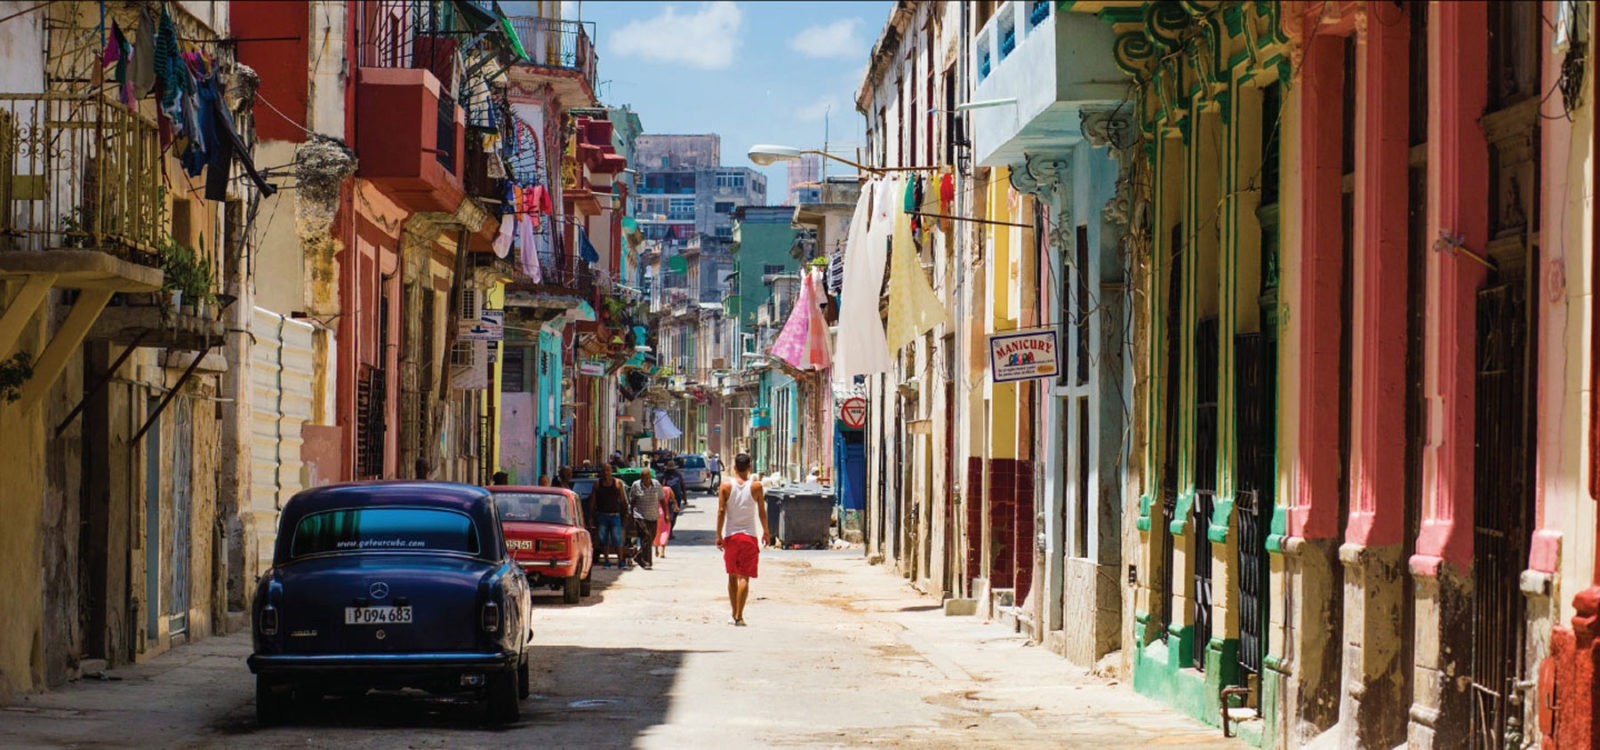 Cuba travel - Lonely Planet